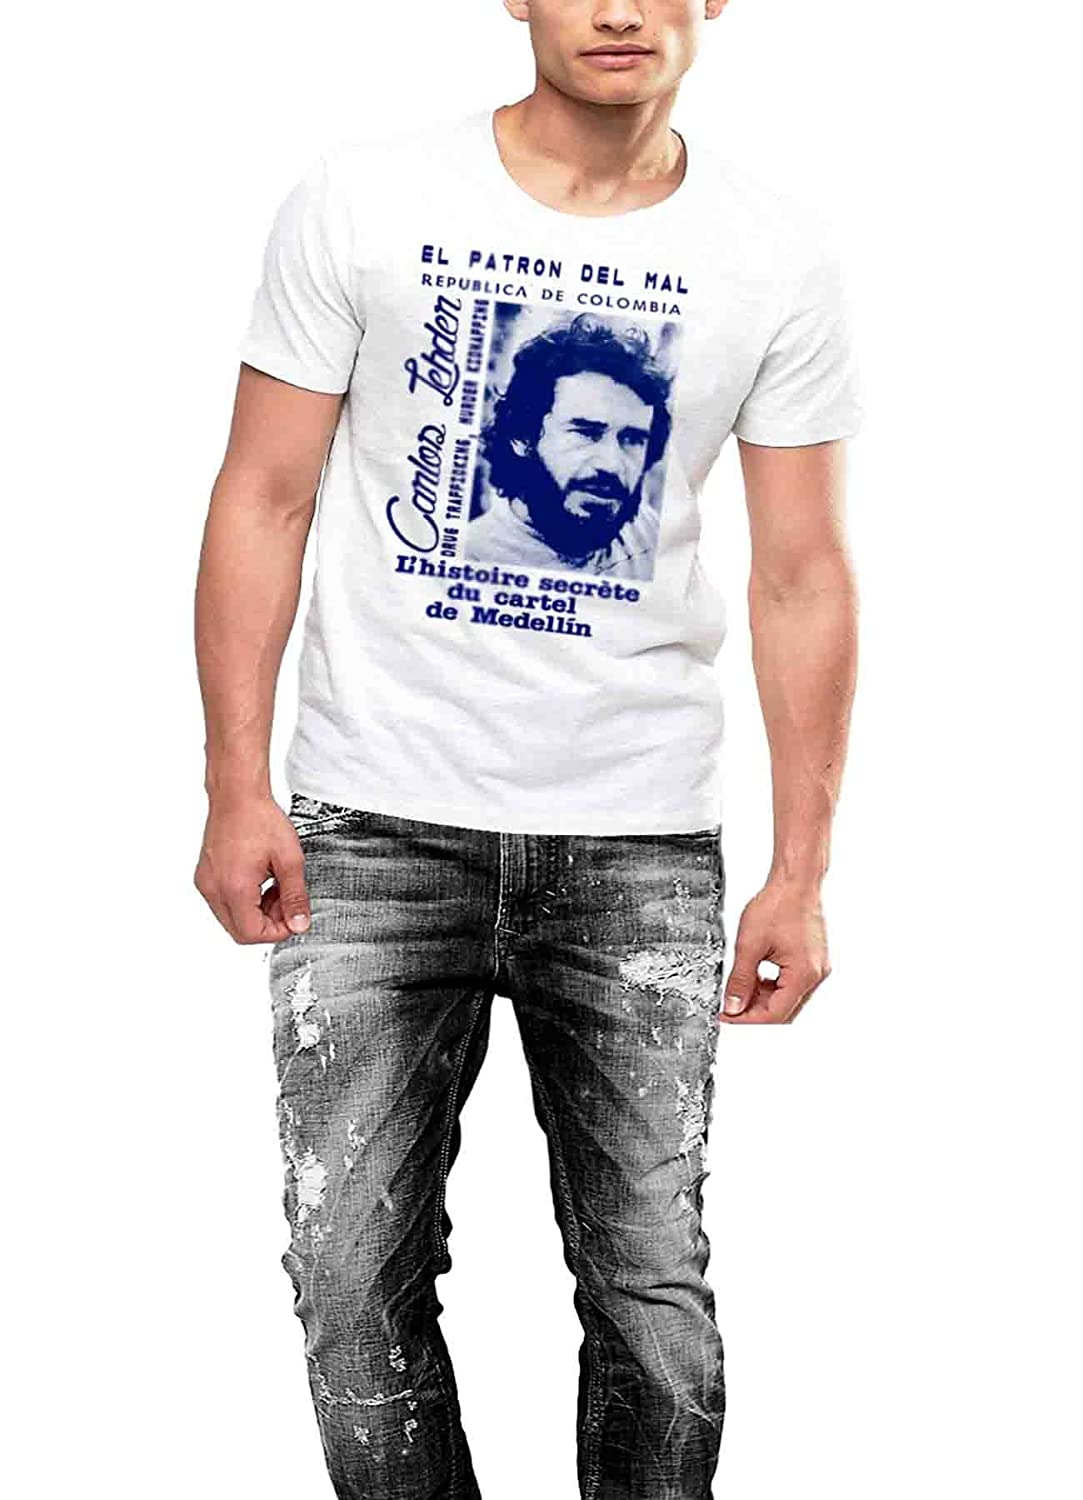 Pablo Escobar T-shirt Medellin Cartel Partner Carlos King of ...